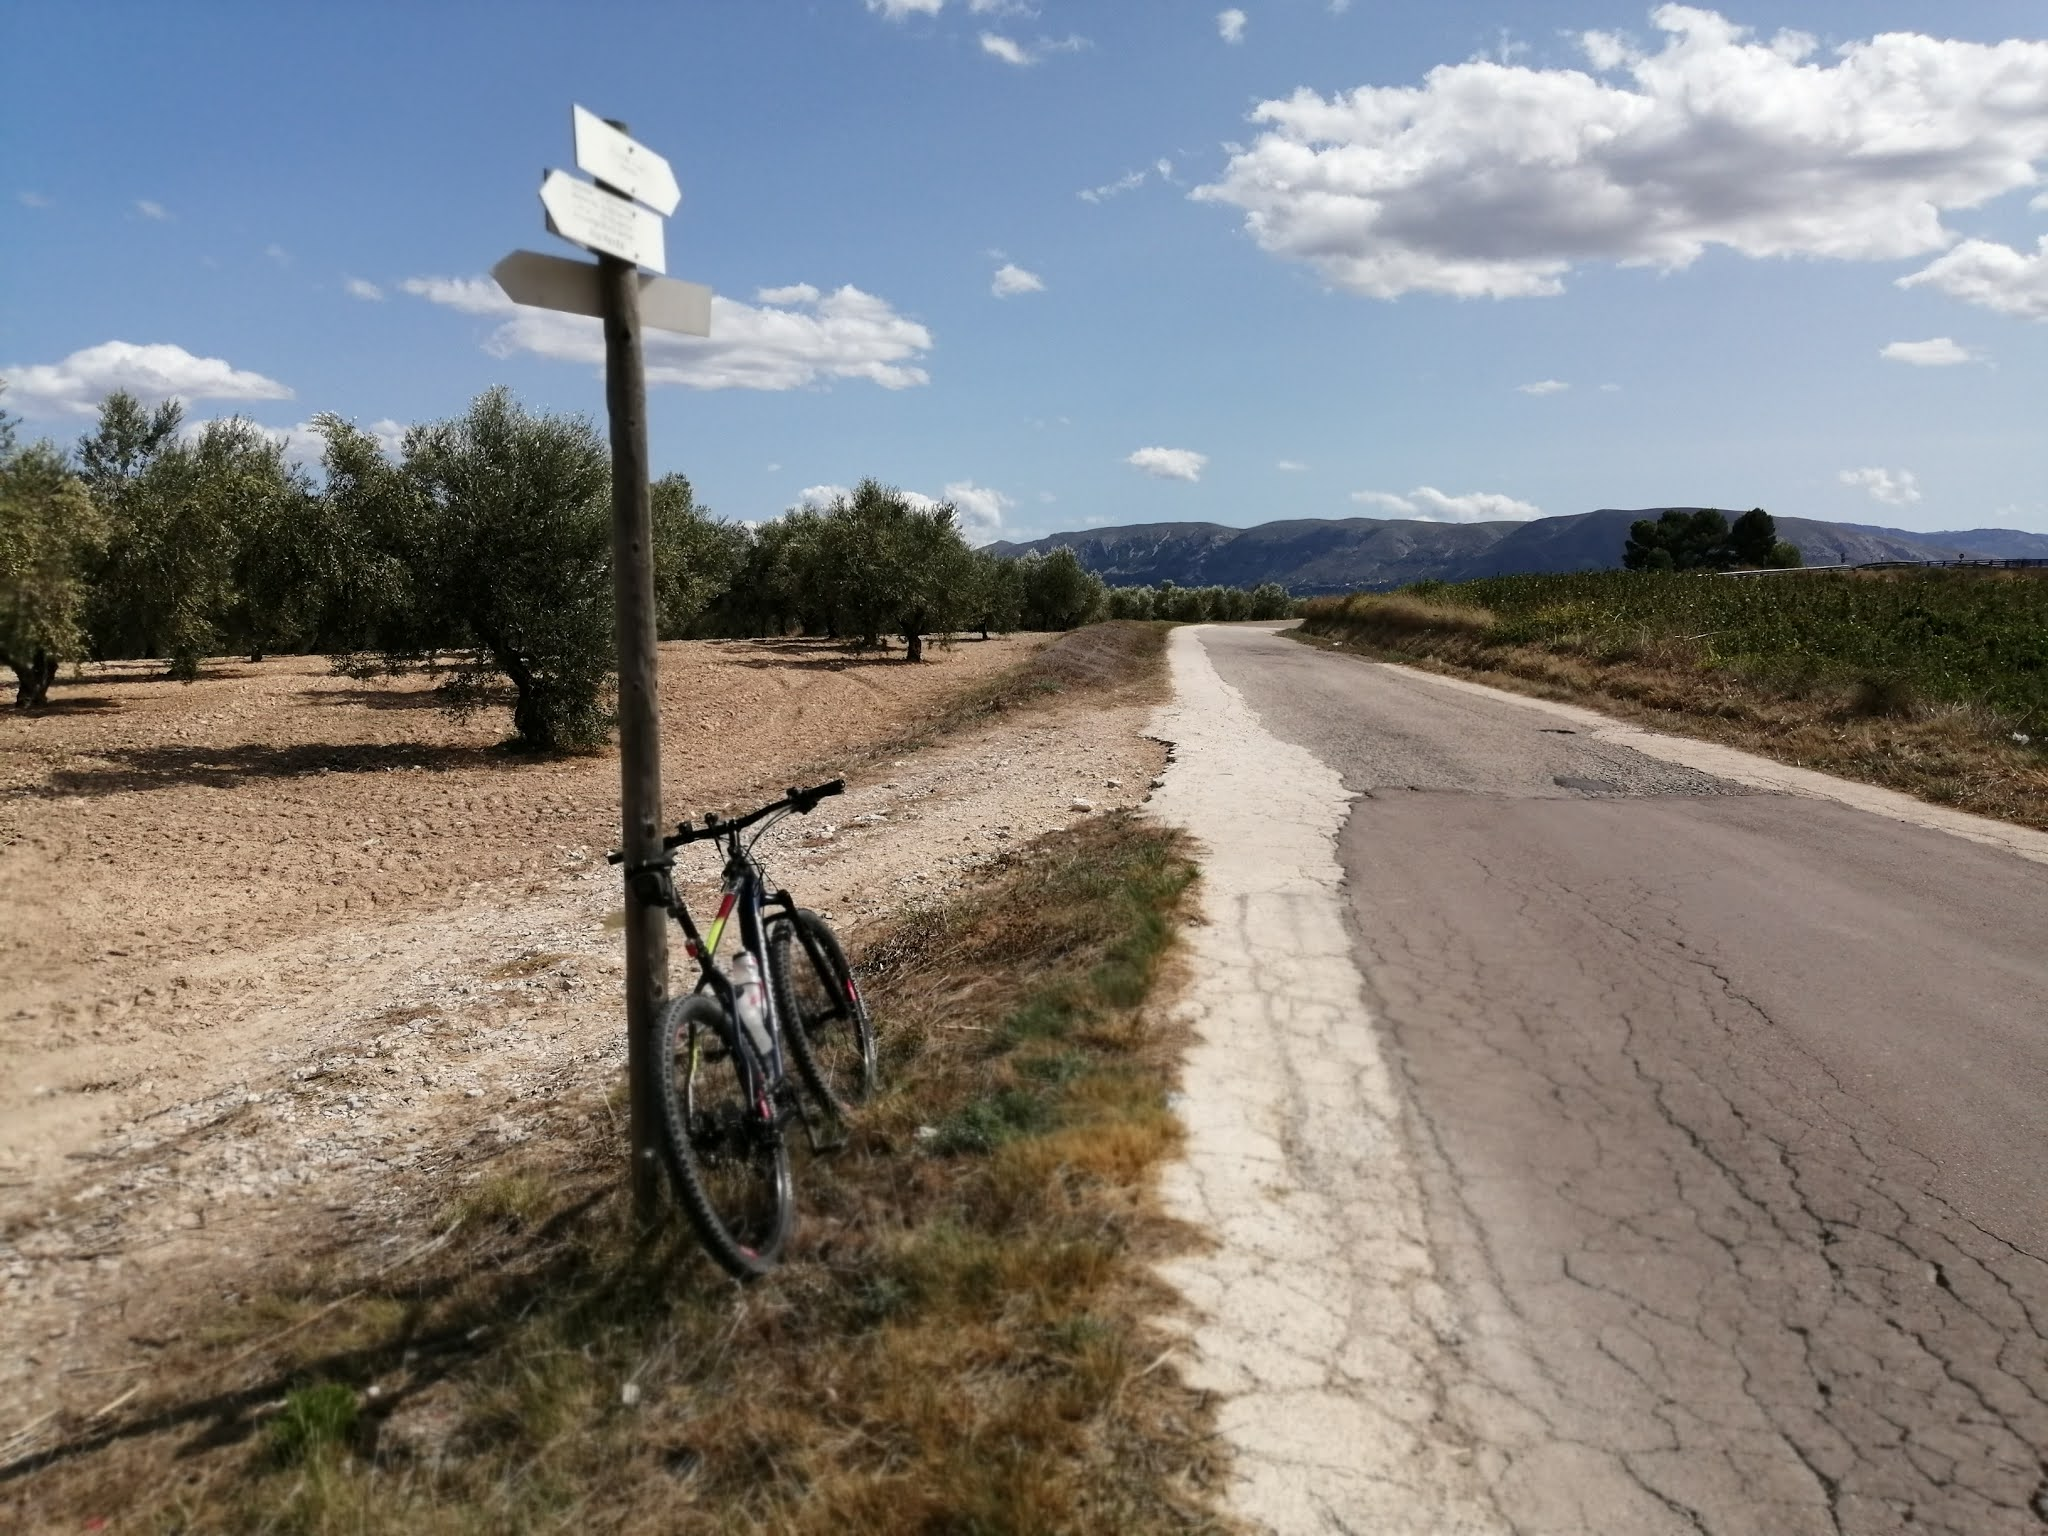 View of the Serpis Greenway near Muro de Alcoy, Alicante